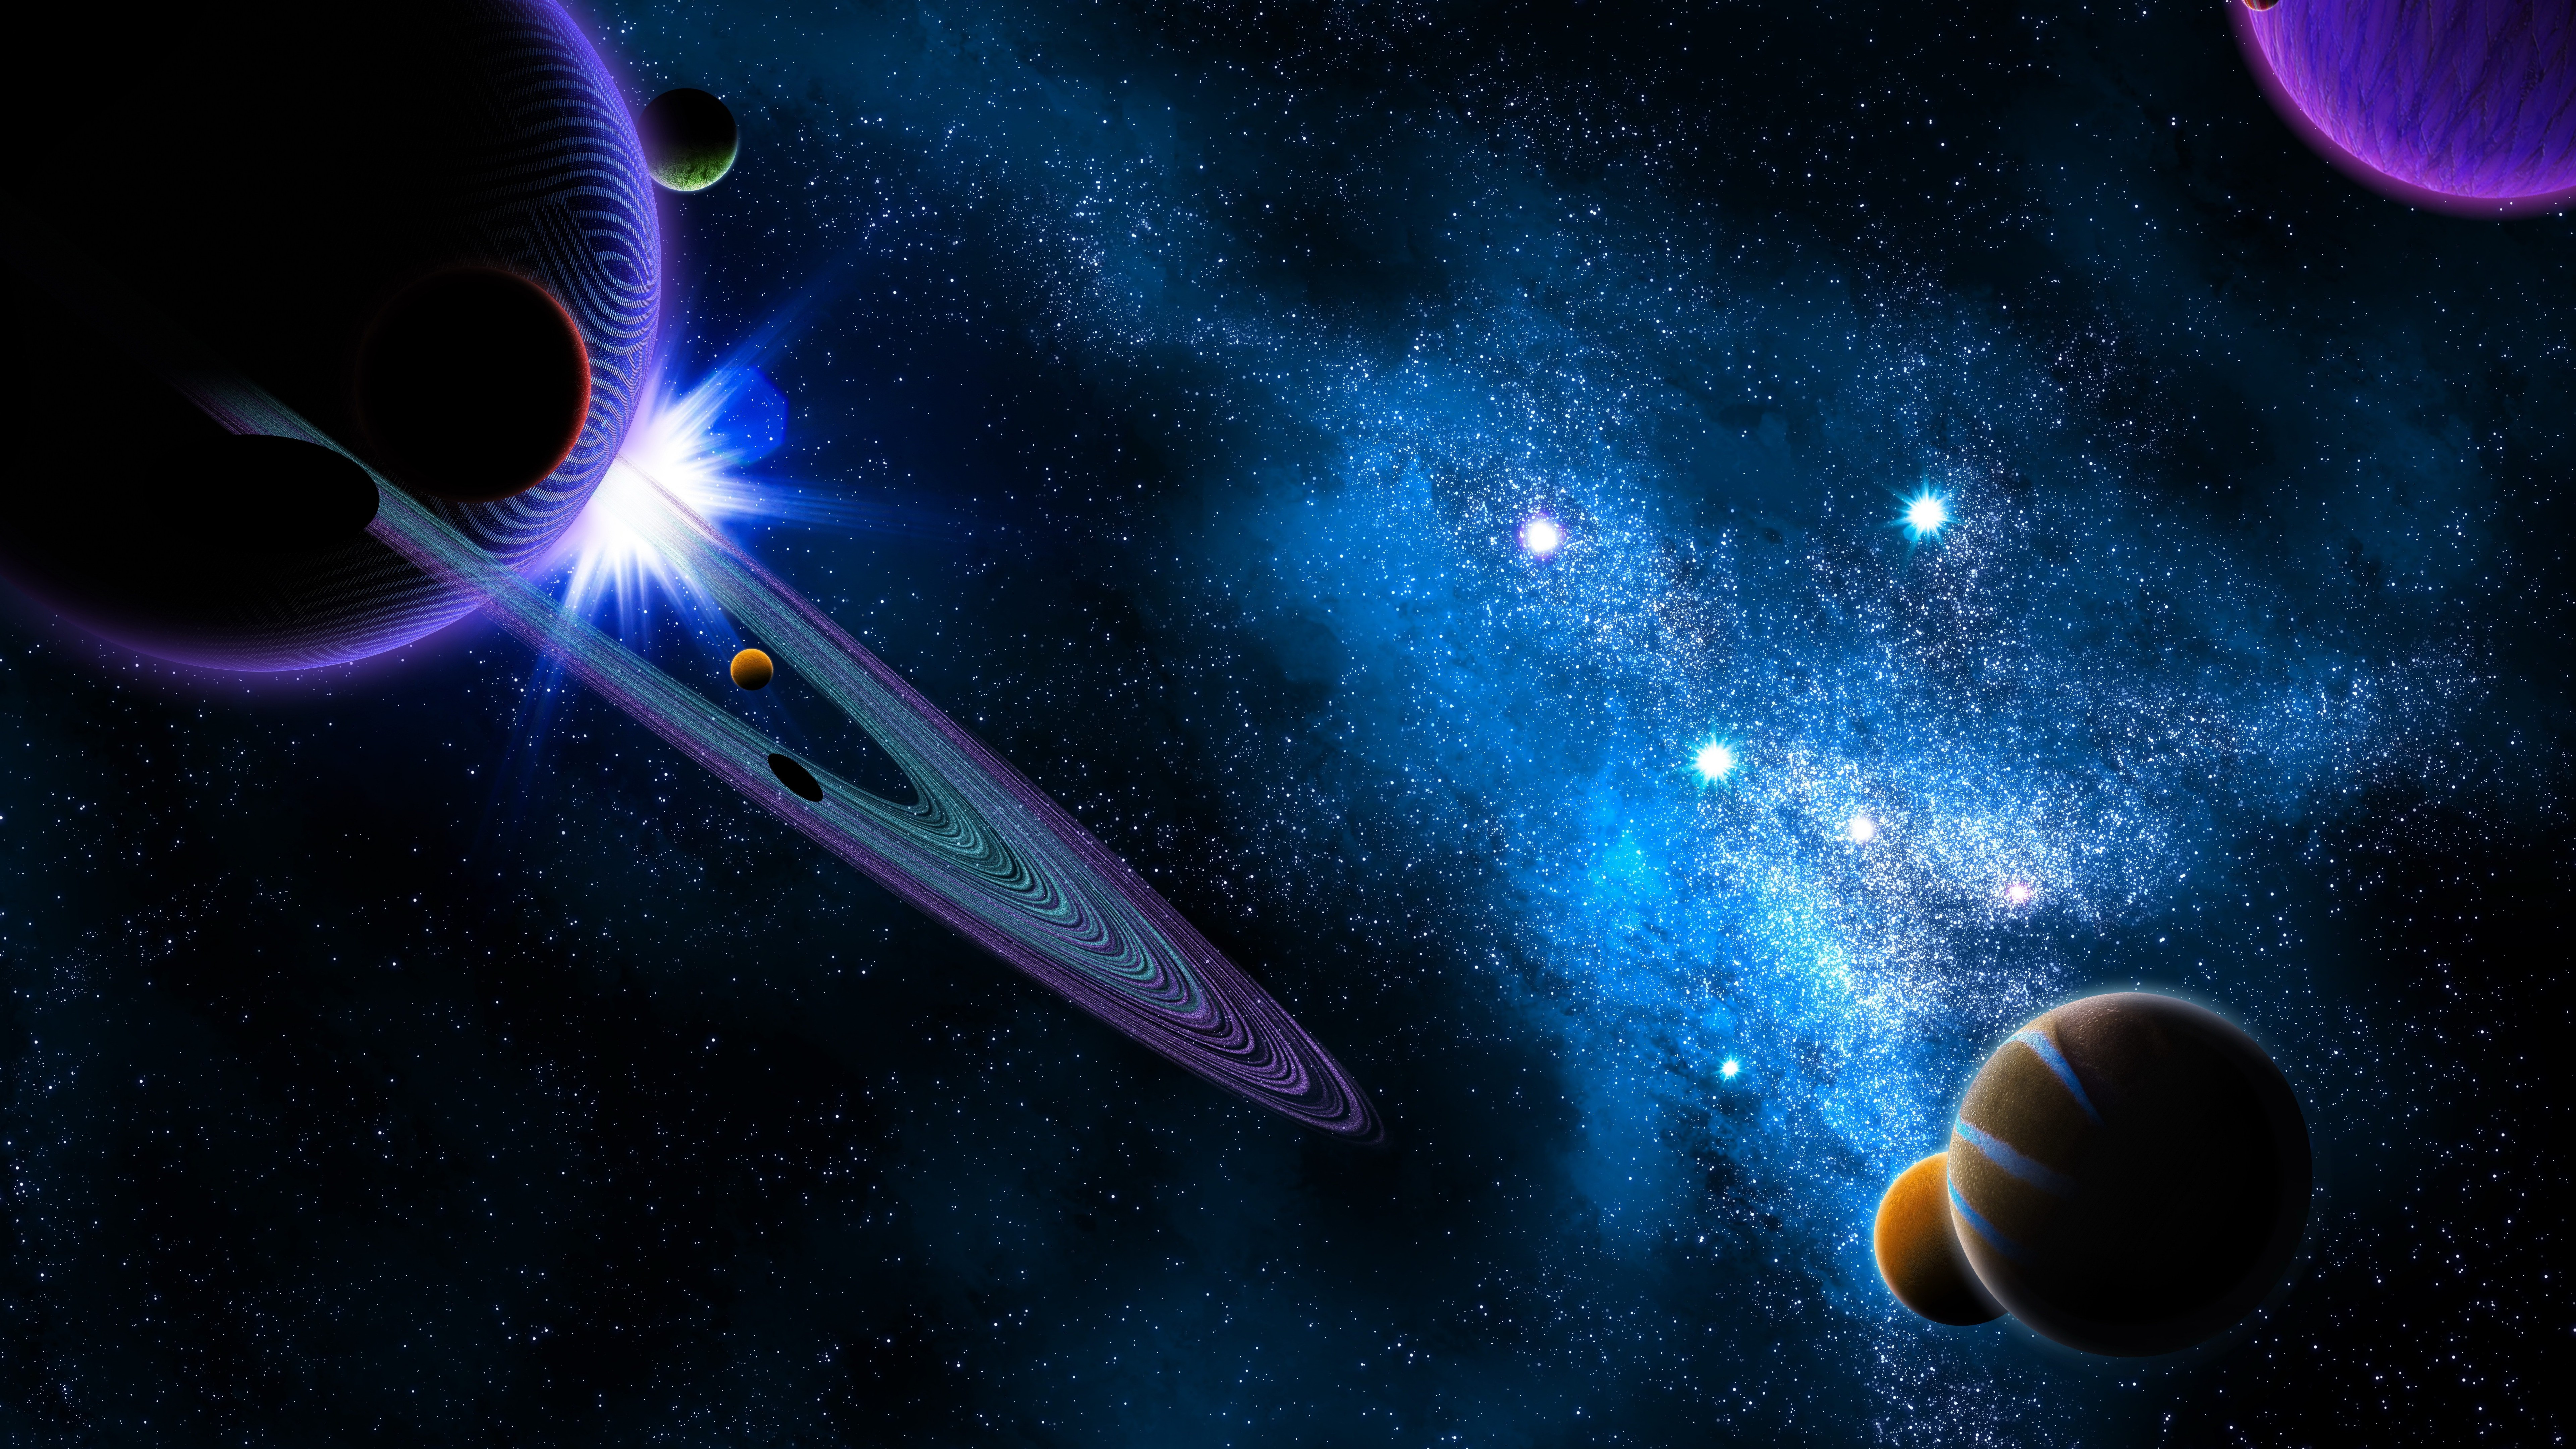 Saturn And Other Planets Wallpaper 8k Ultra Hd Id3912